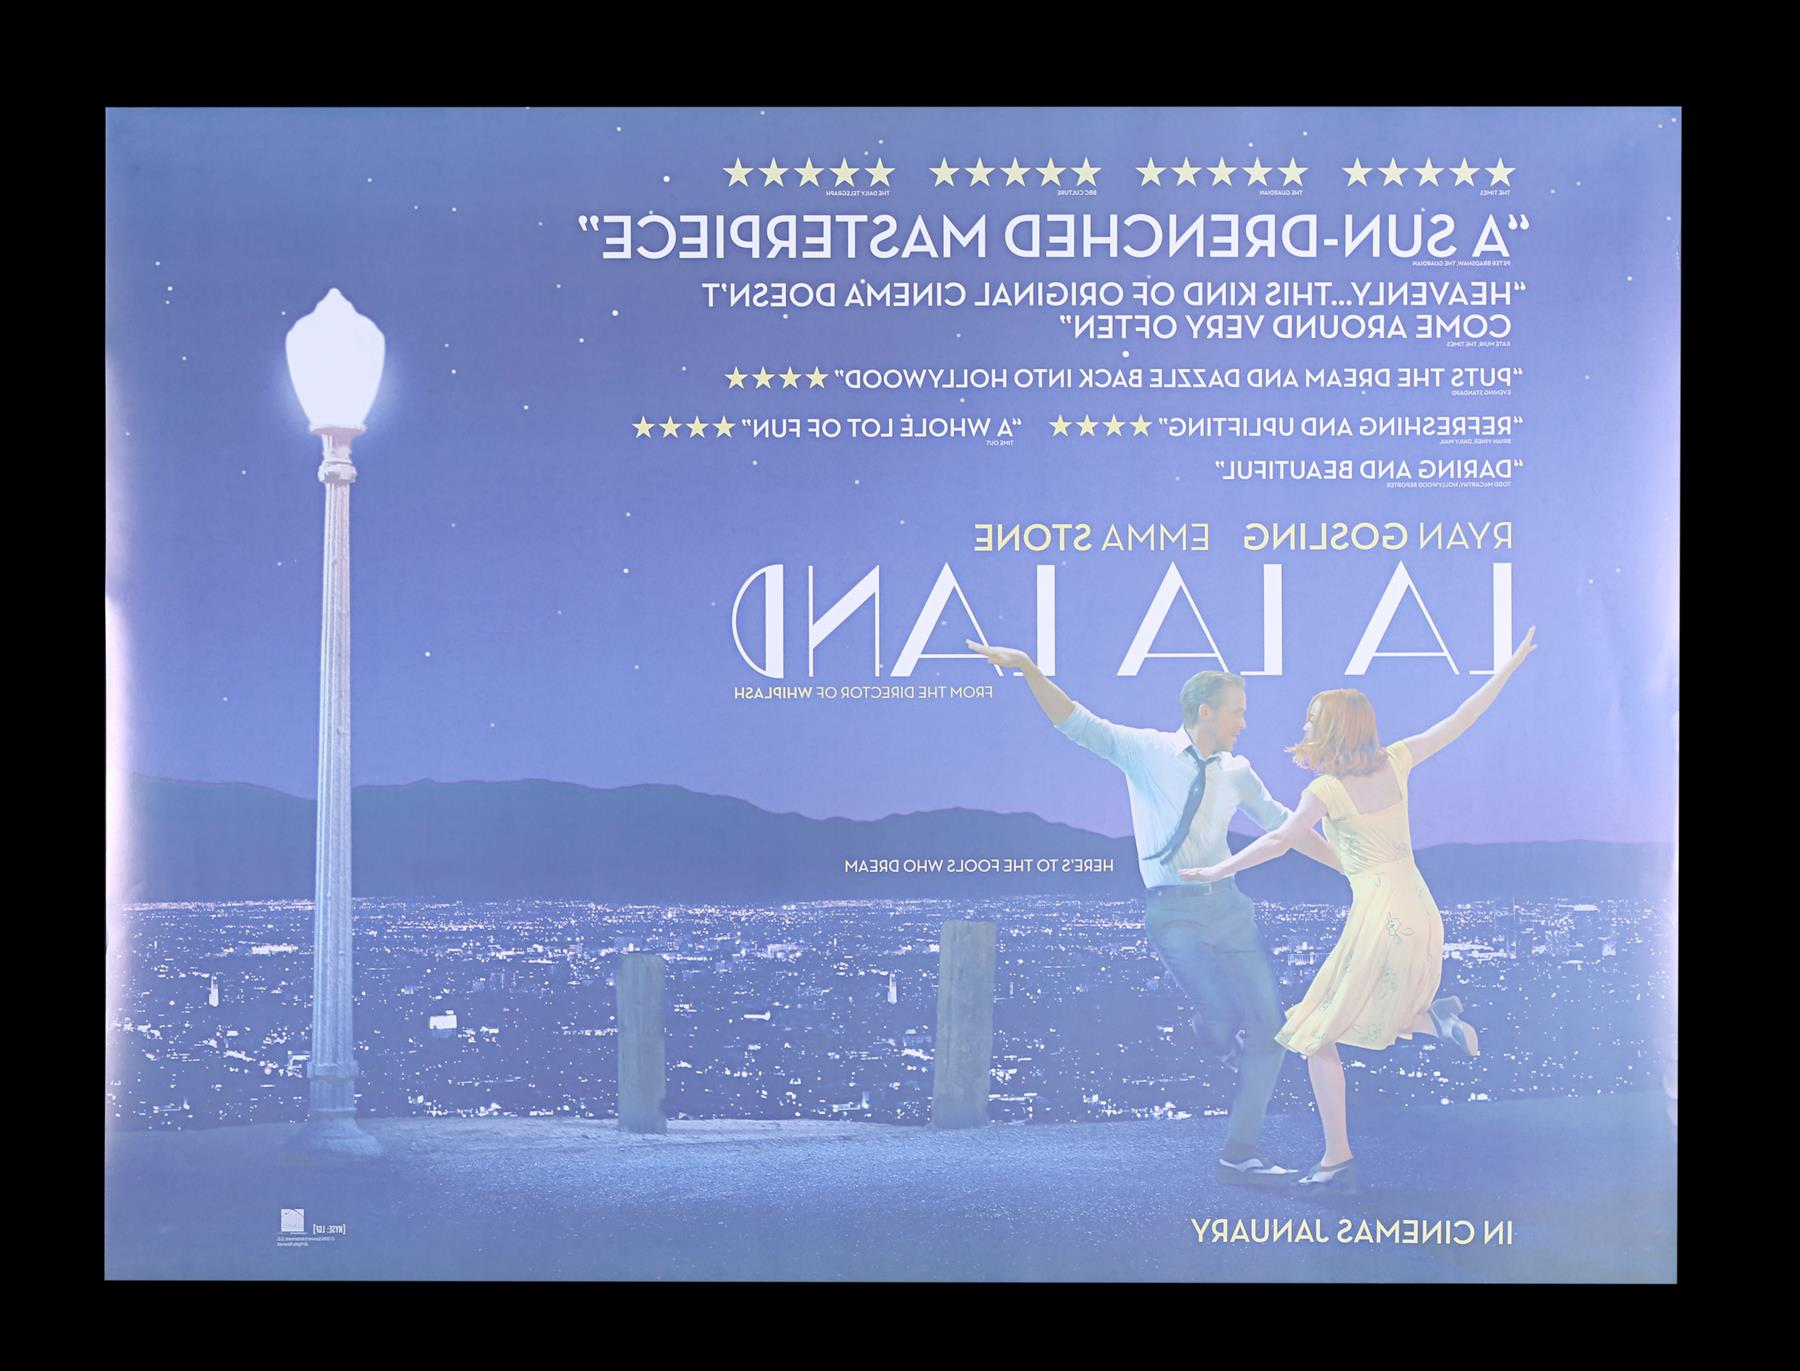 LA LA LAND (2016) - Two UK Quads and One-Sheet, 2016 - Image 3 of 7